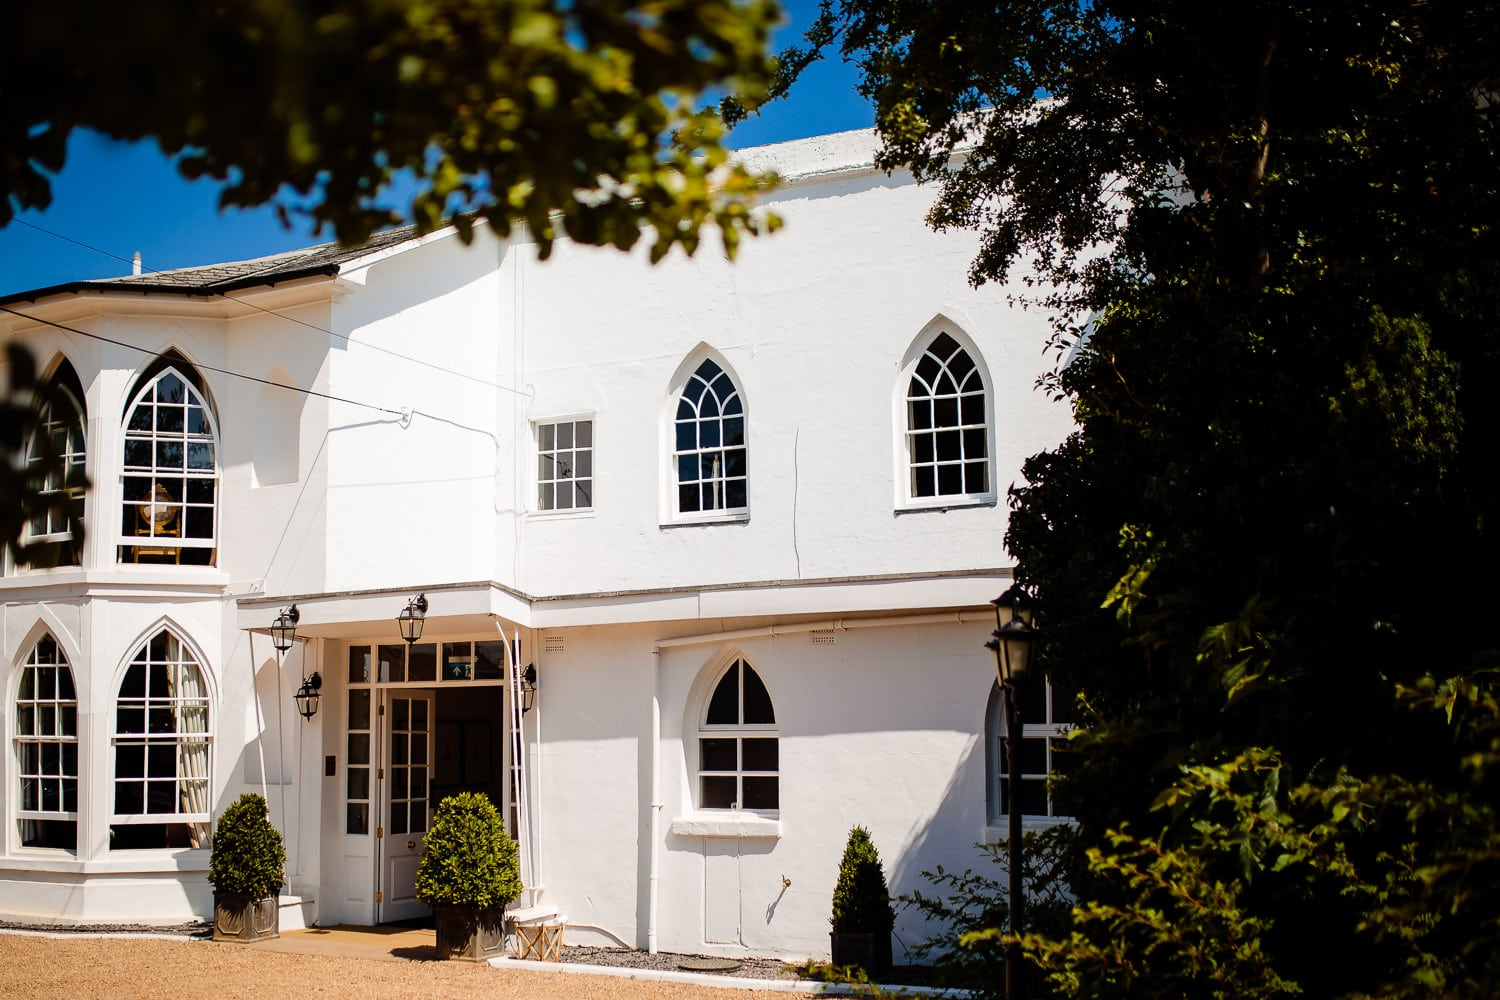 Warwick House Wedding Photography captures warwick house exterior